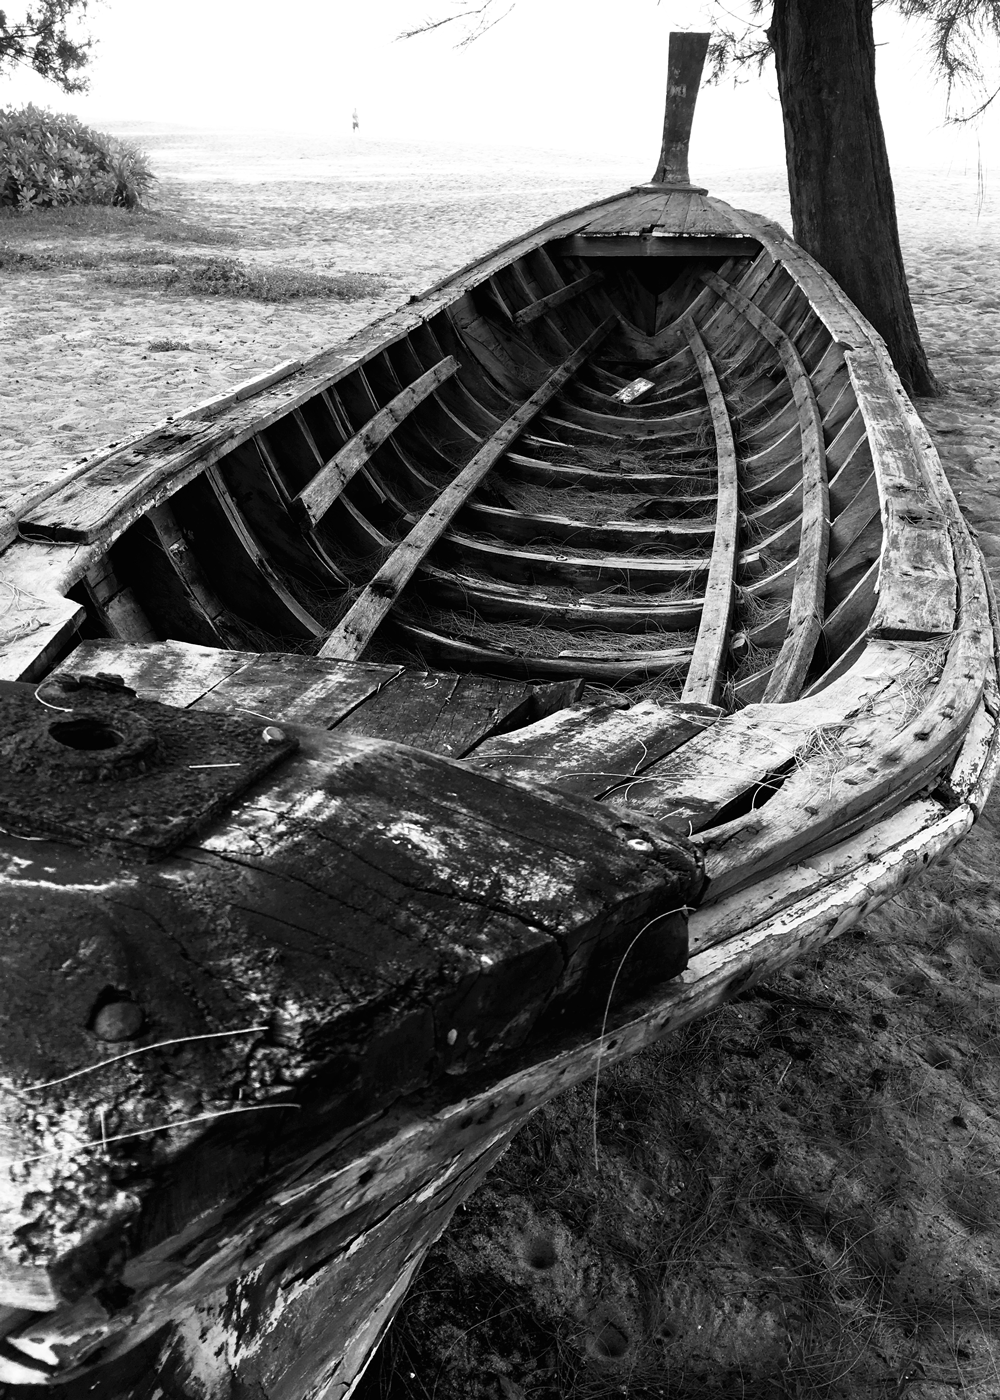 Boat naida ginnane 2018 iphone 6 camera on noir setting